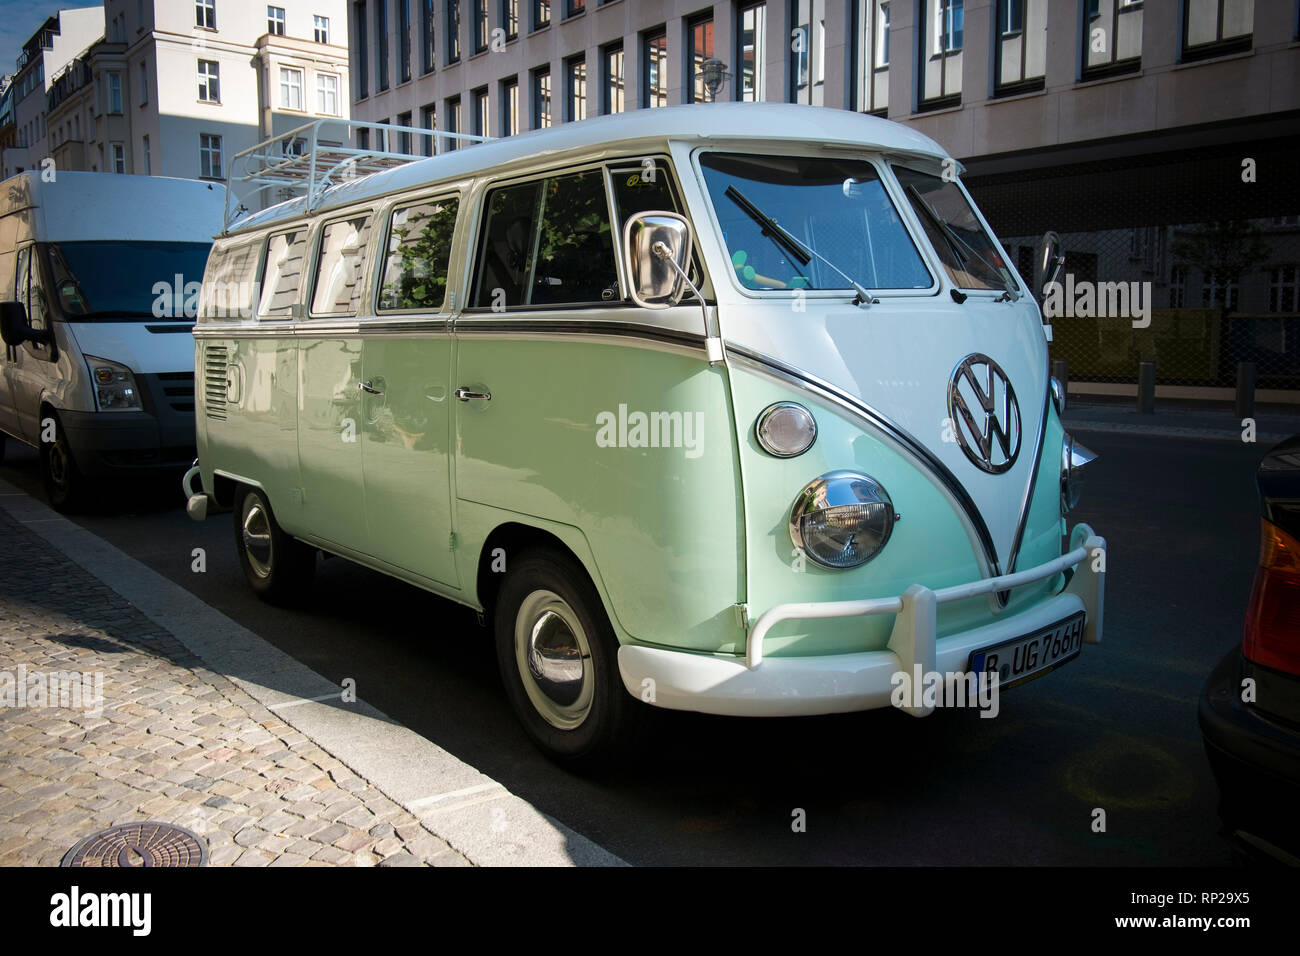 A classic Volkeswagen Minibus parked on the street in Berlin, Germany. - Stock Image